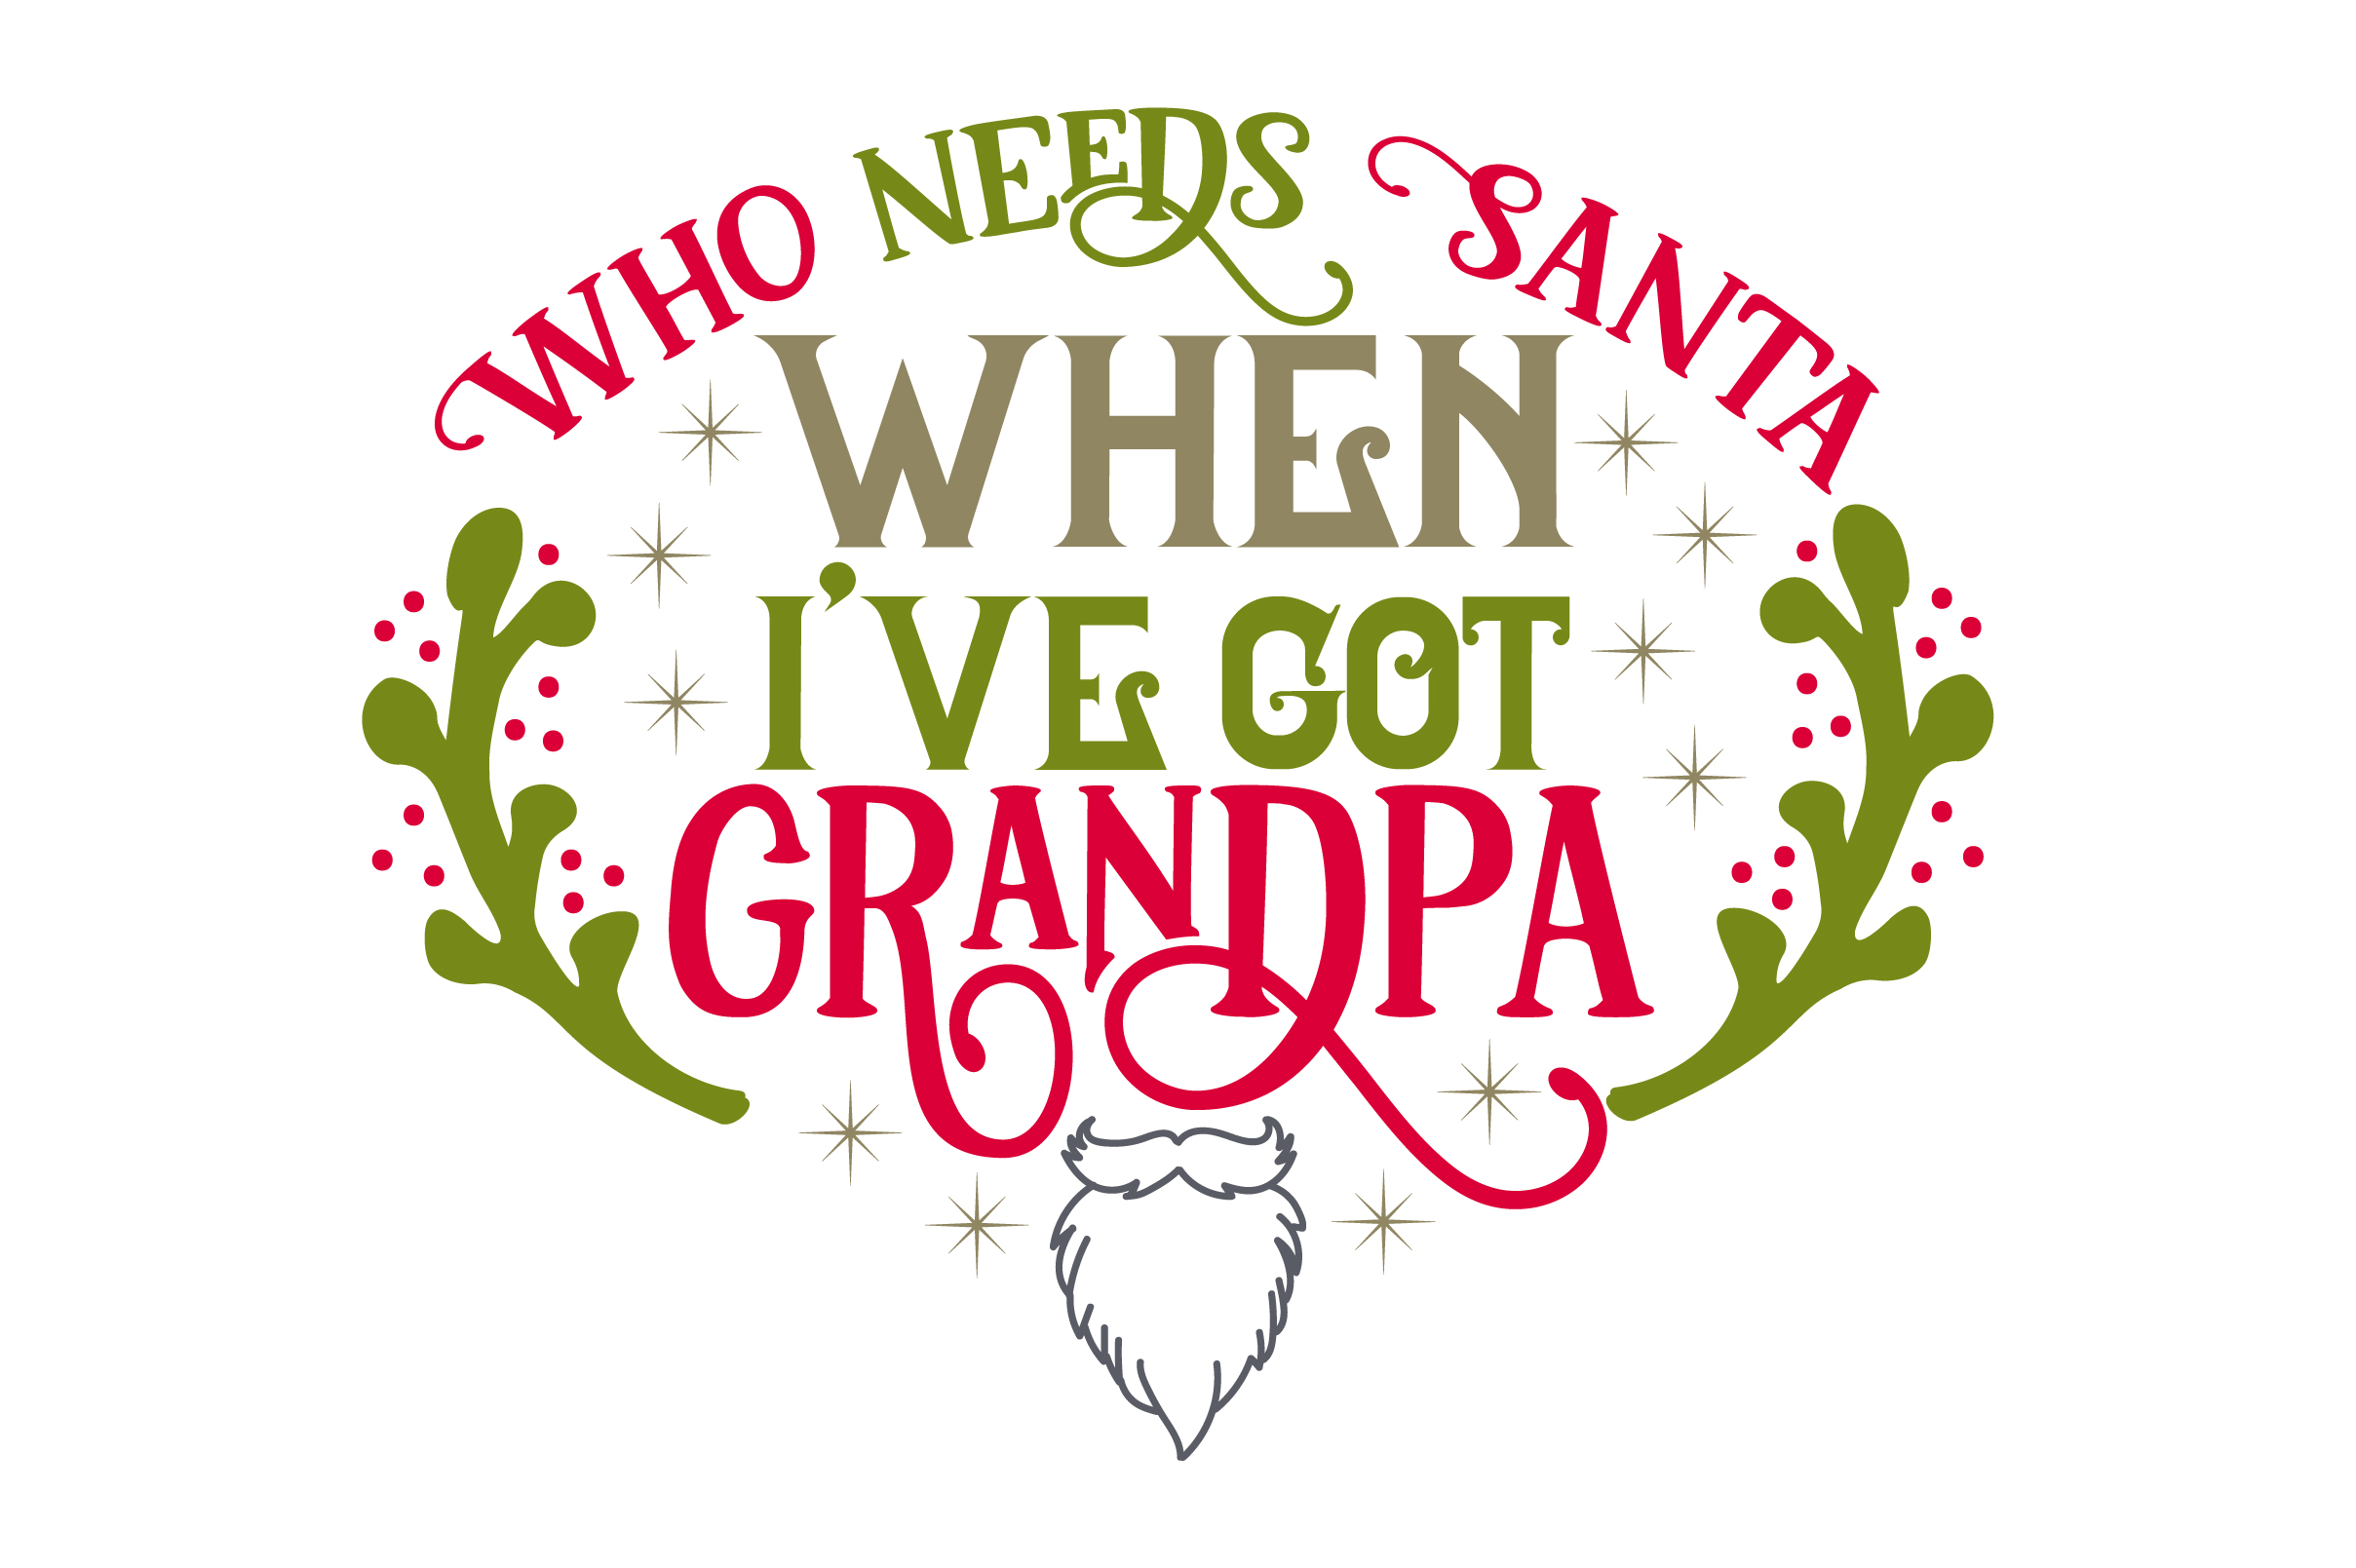 Download Free Who Needs Santa When I Ve Got Grandpa Svg Cut File By Creative for Cricut Explore, Silhouette and other cutting machines.